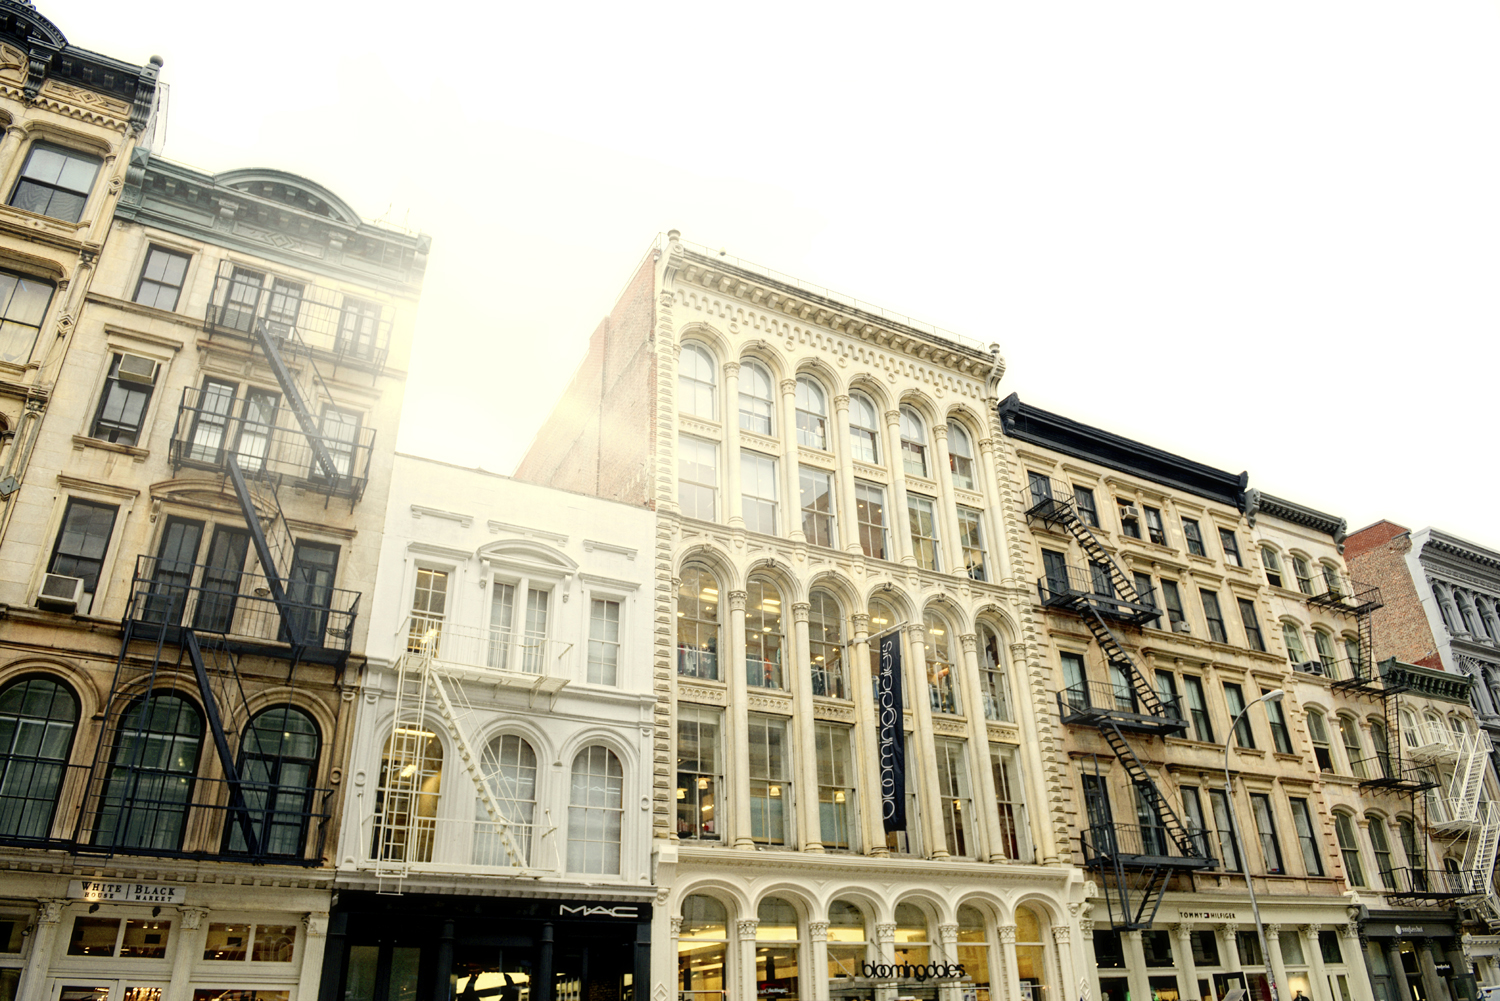 street-buildings-45101304-resize